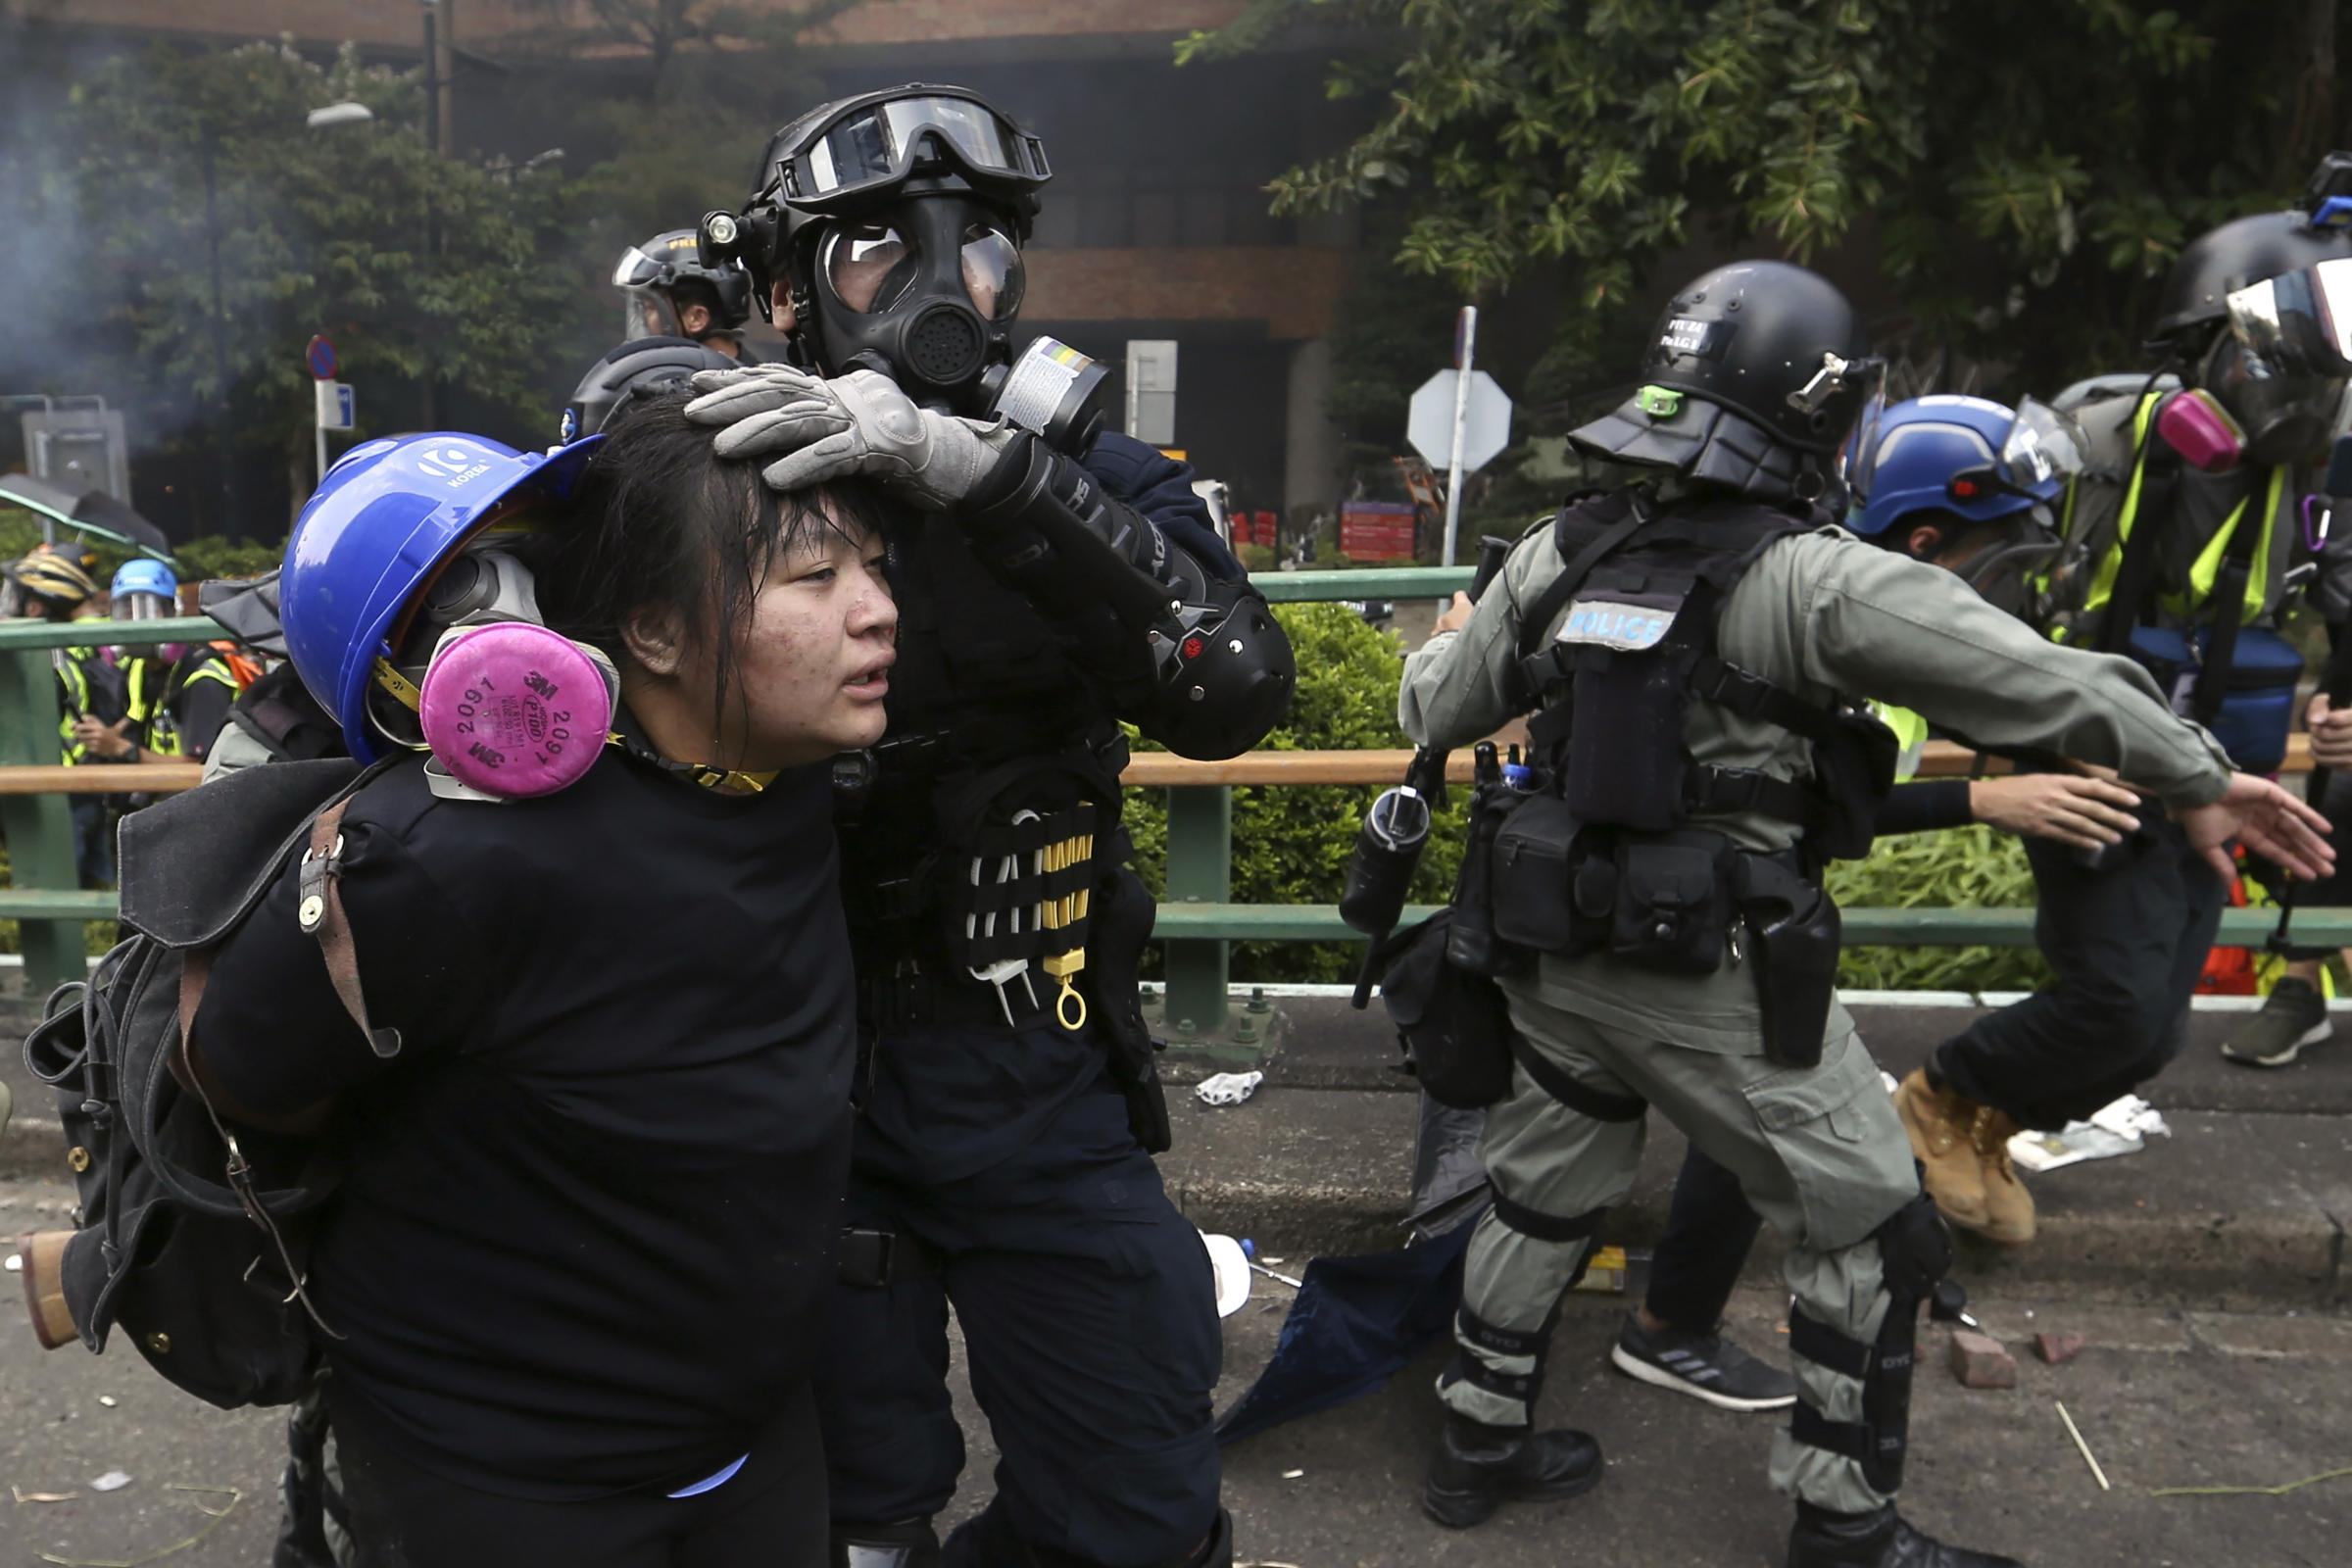 100 protesters surrounded by police at Hong Kong university - Dudley News